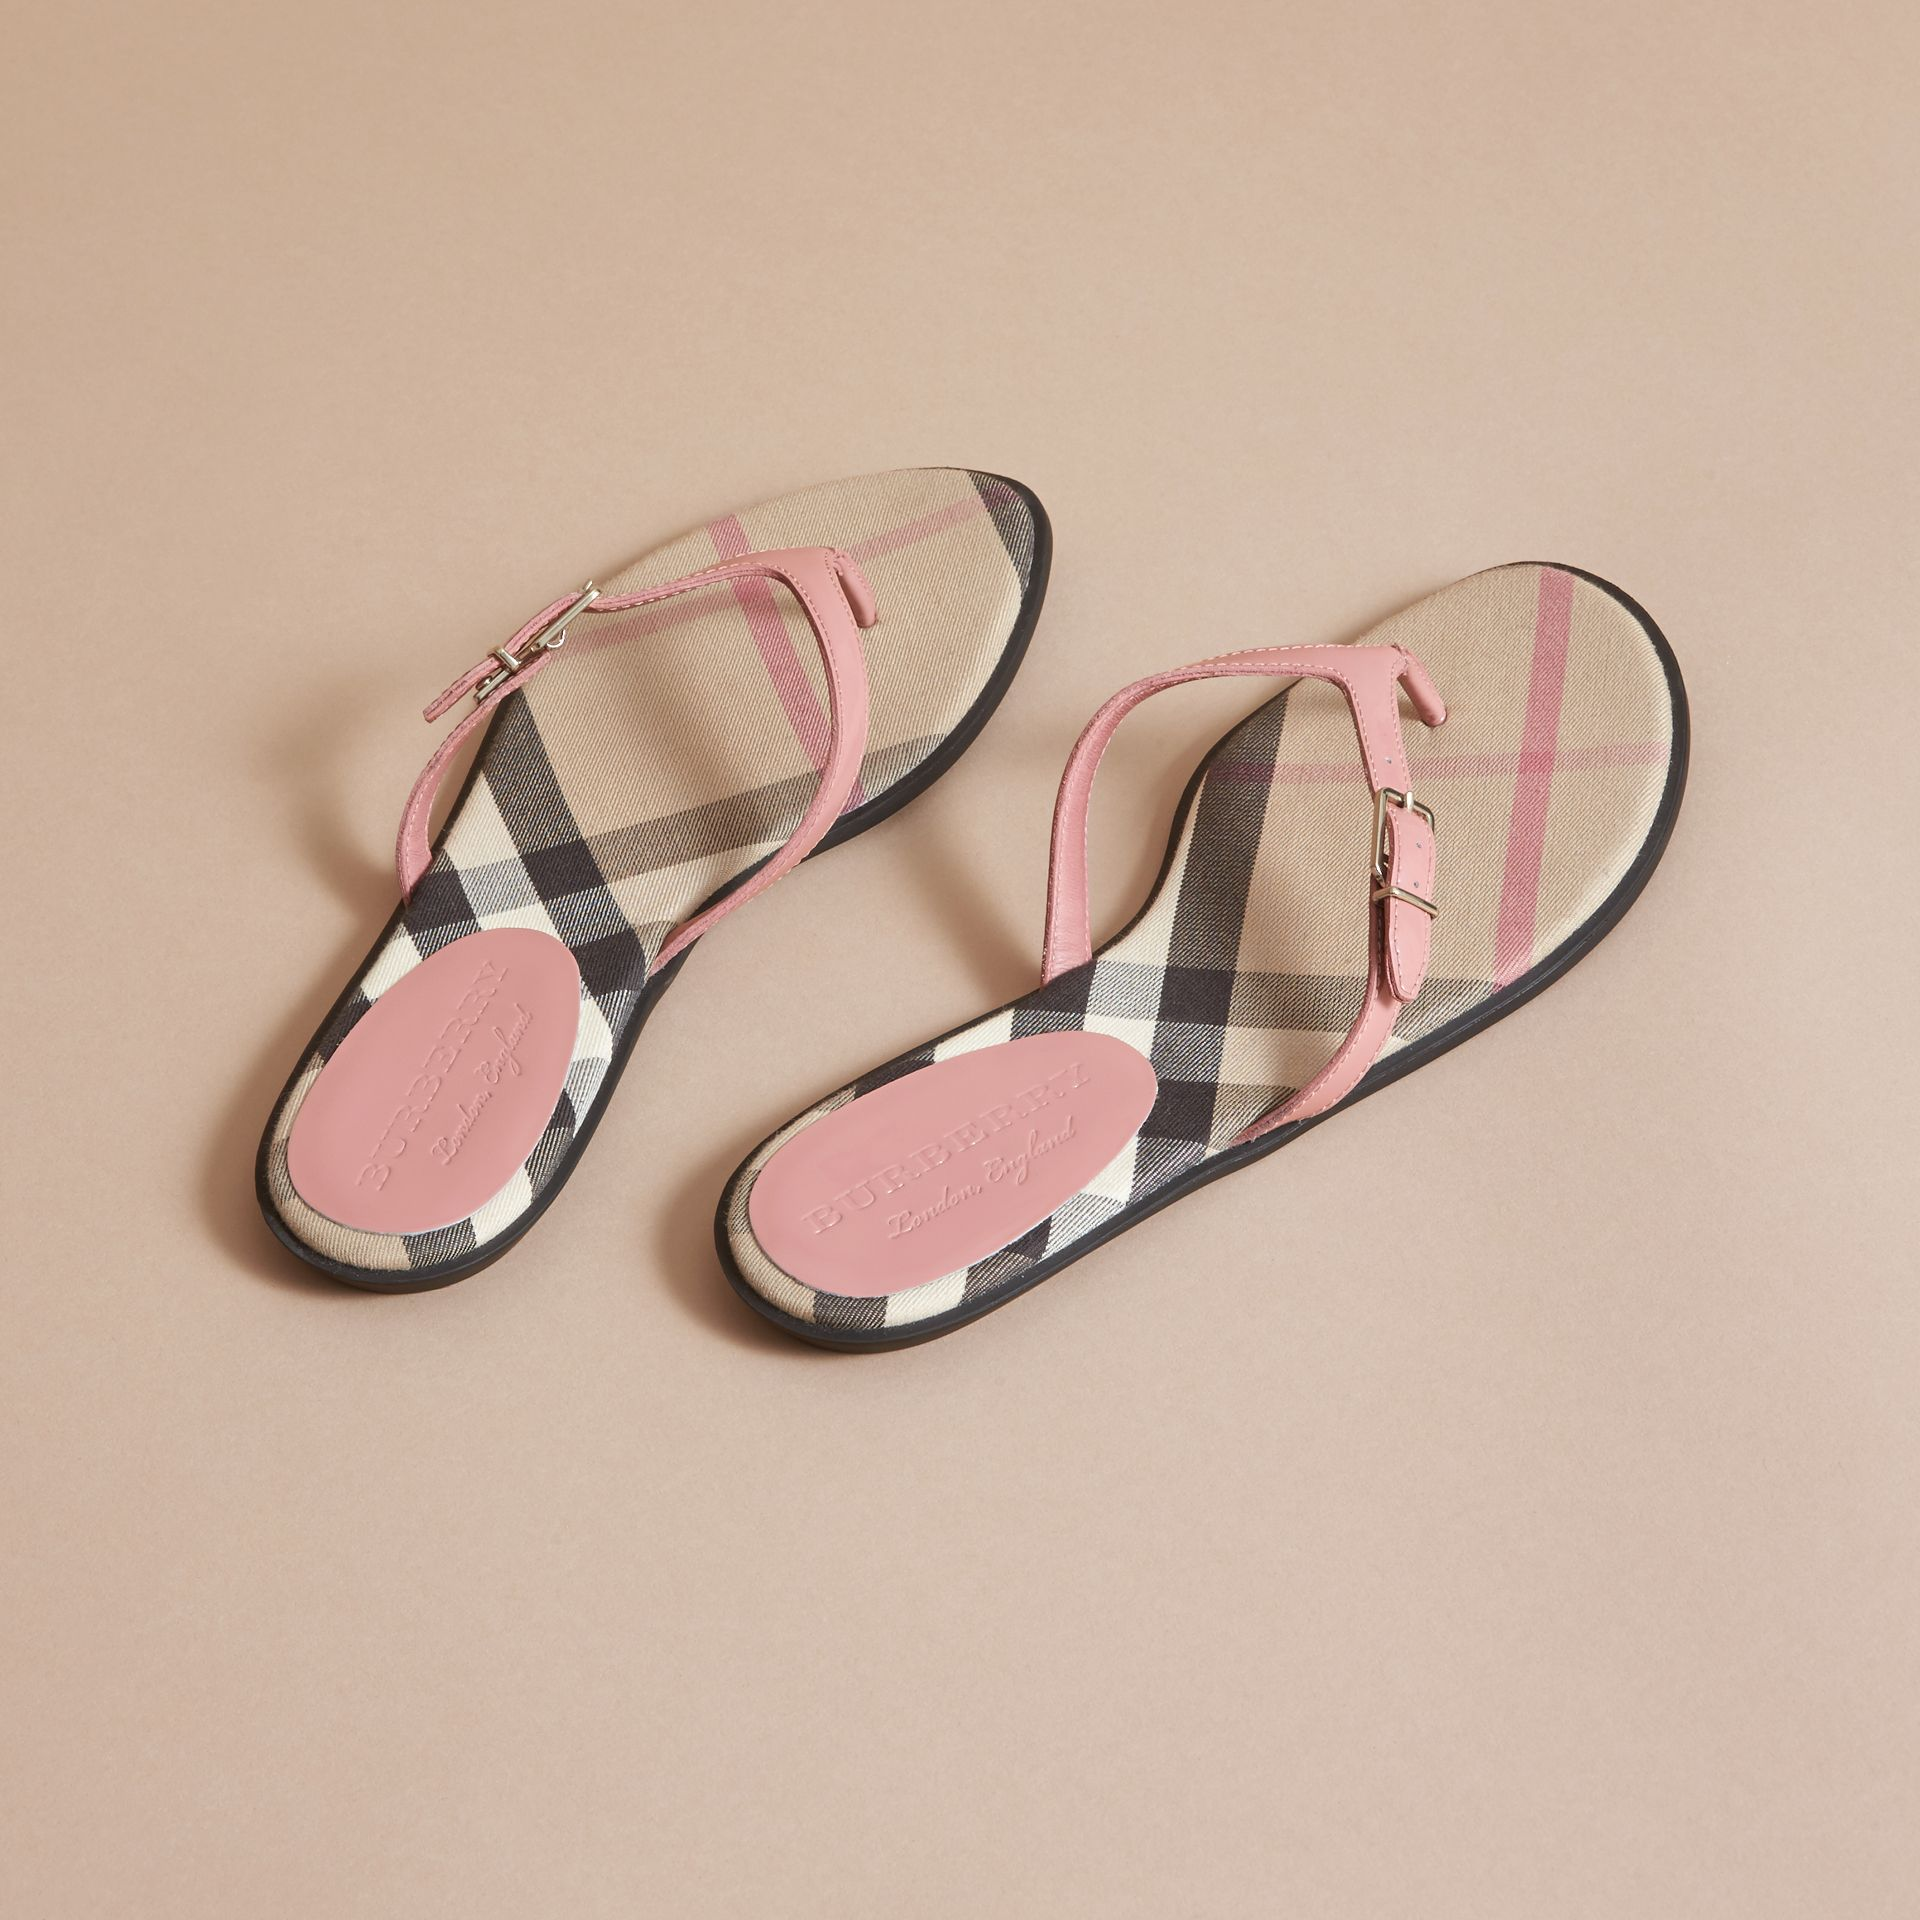 House Check and Patent Leather Sandals in Nude Pink - Women | Burberry Singapore - gallery image 4